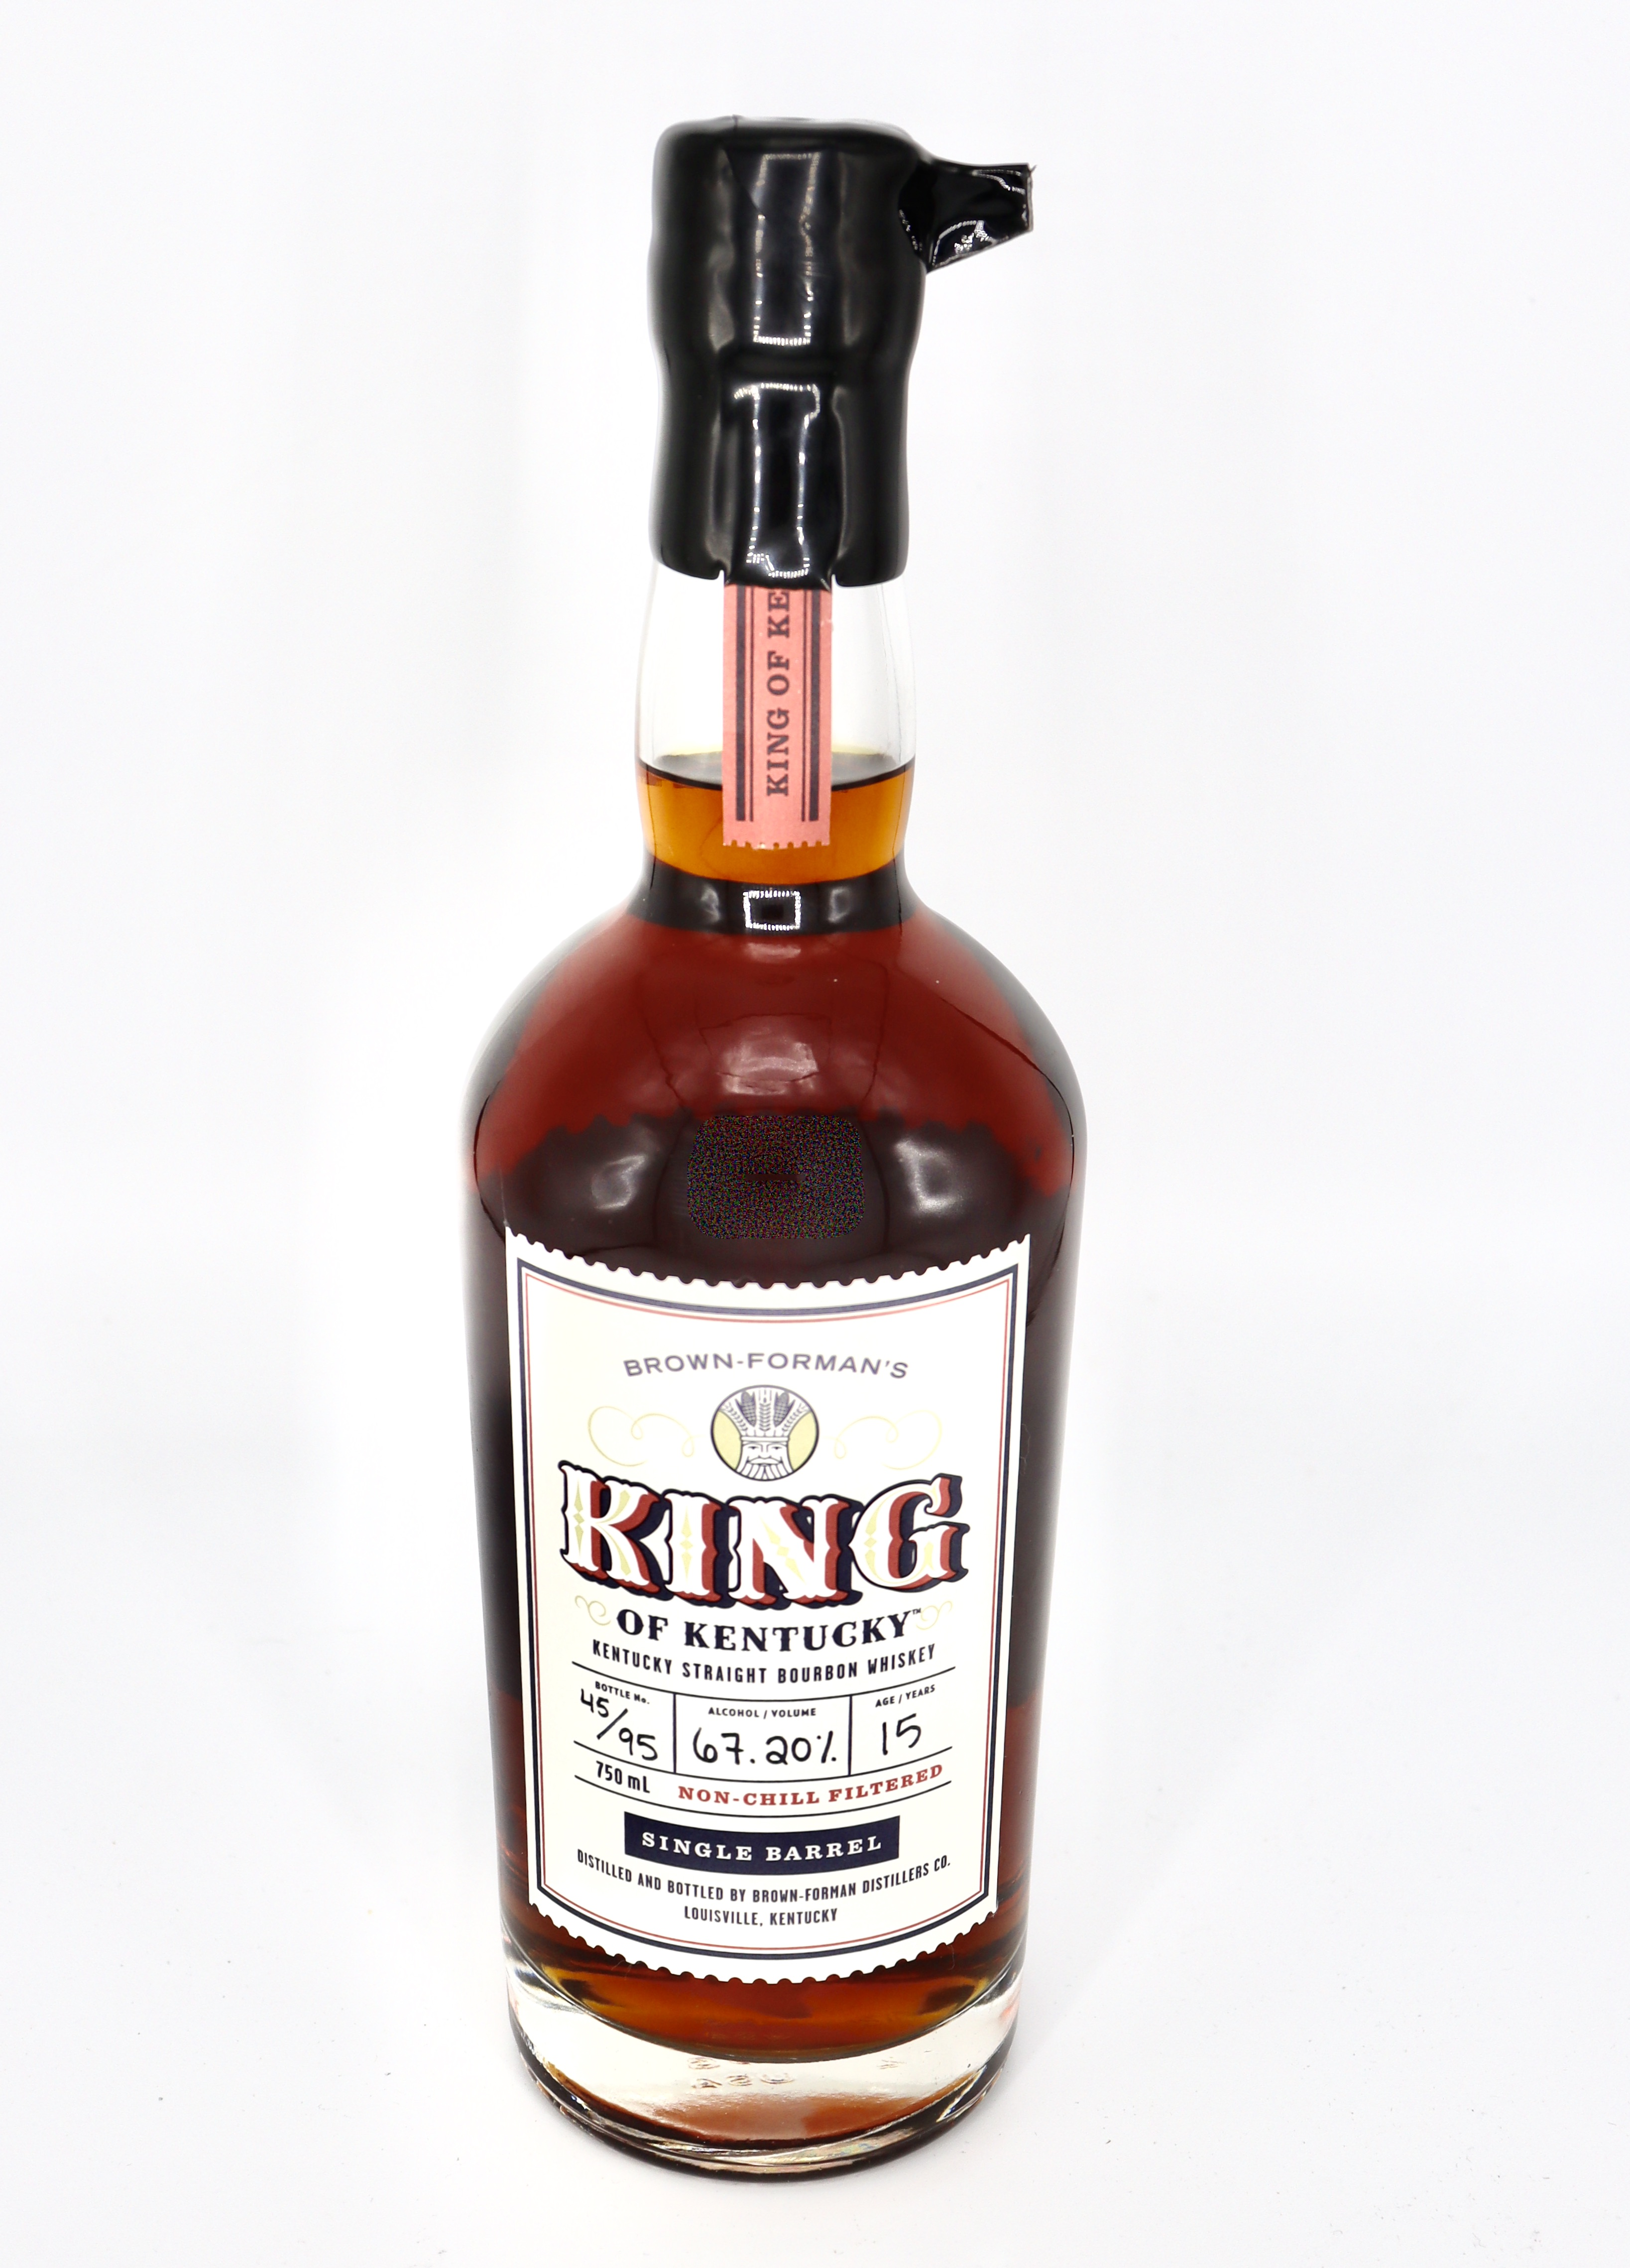 Brown Formans King of Kentucky Single Barrel 15 yr Kentucky Straight Bourbon 134.4 proof Barrel # 17